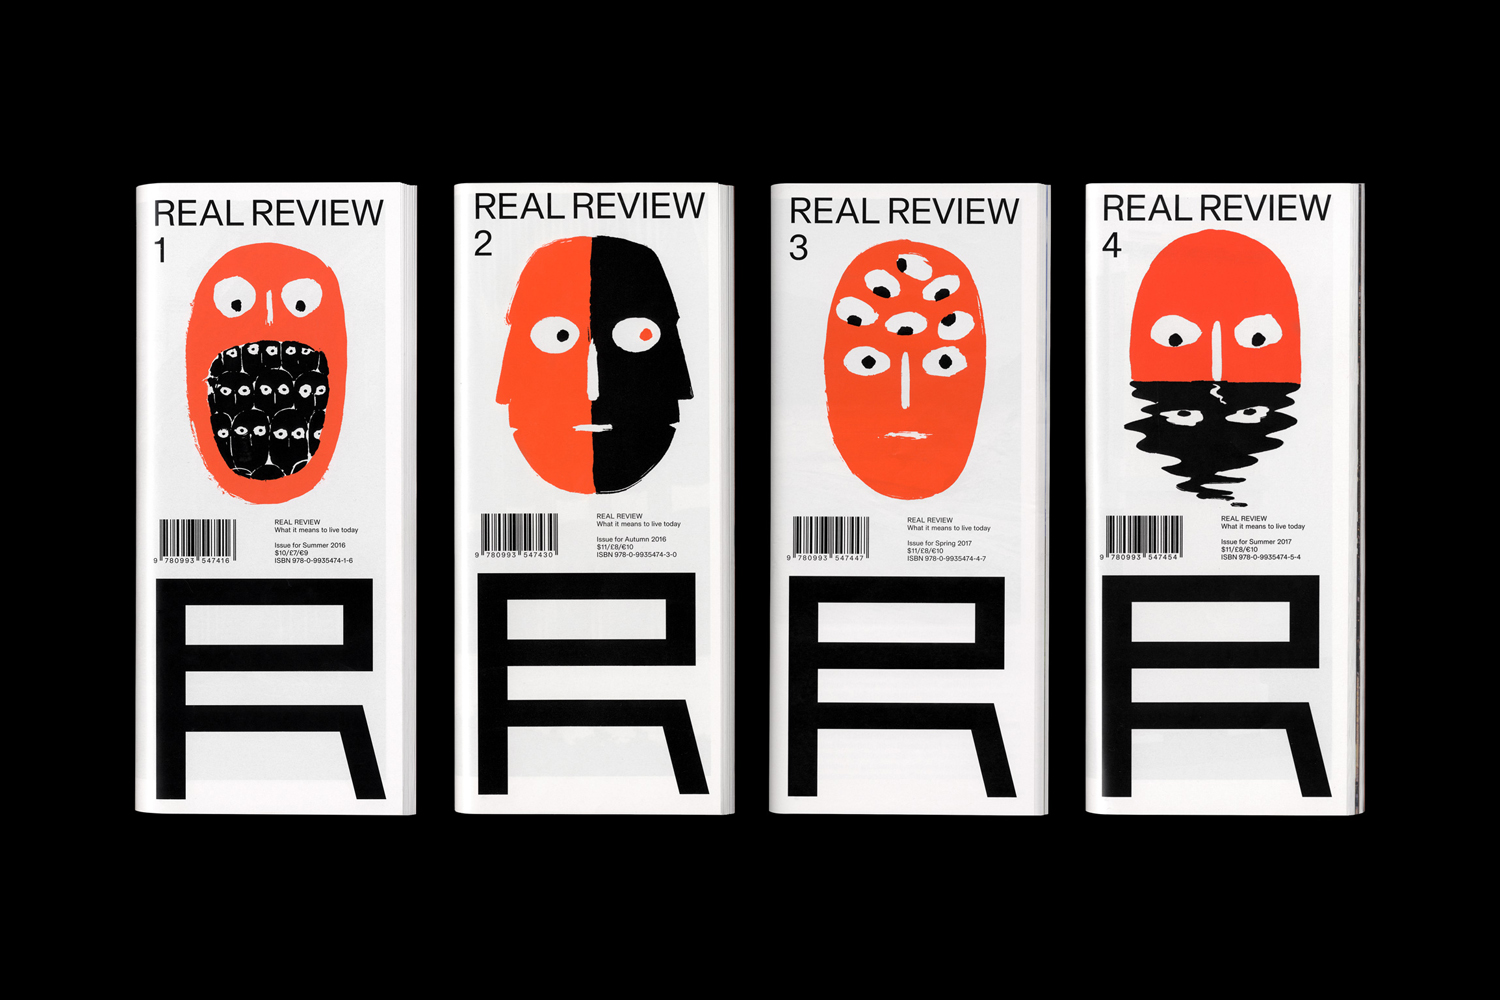 4 covers Real Review